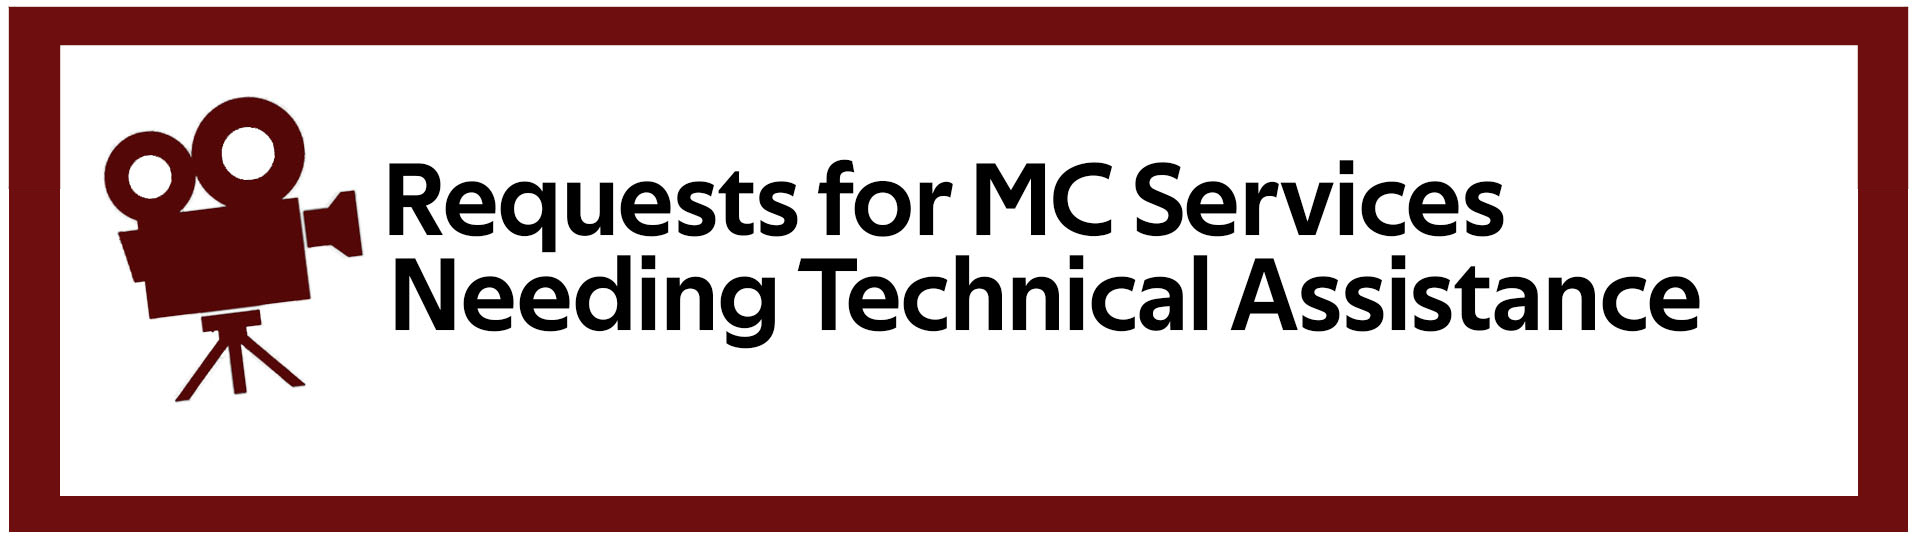 Requests for MC Services Needing Technical Assistance